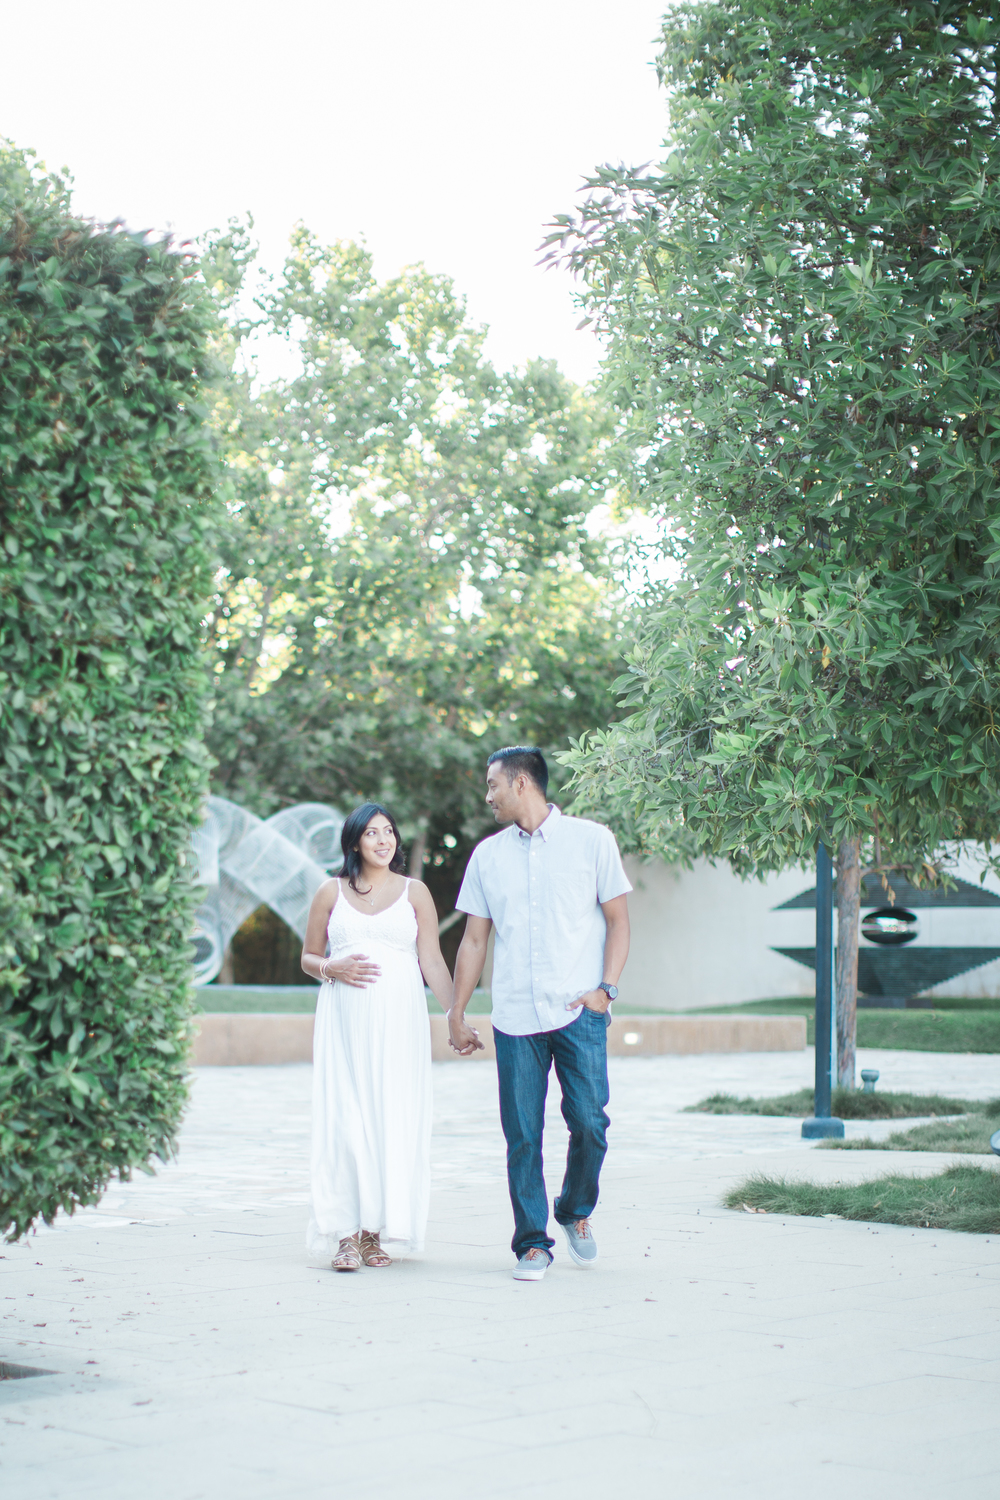 Marcella_Maternity_Cerritos_BrandonJFerlin_Photography-61.jpg